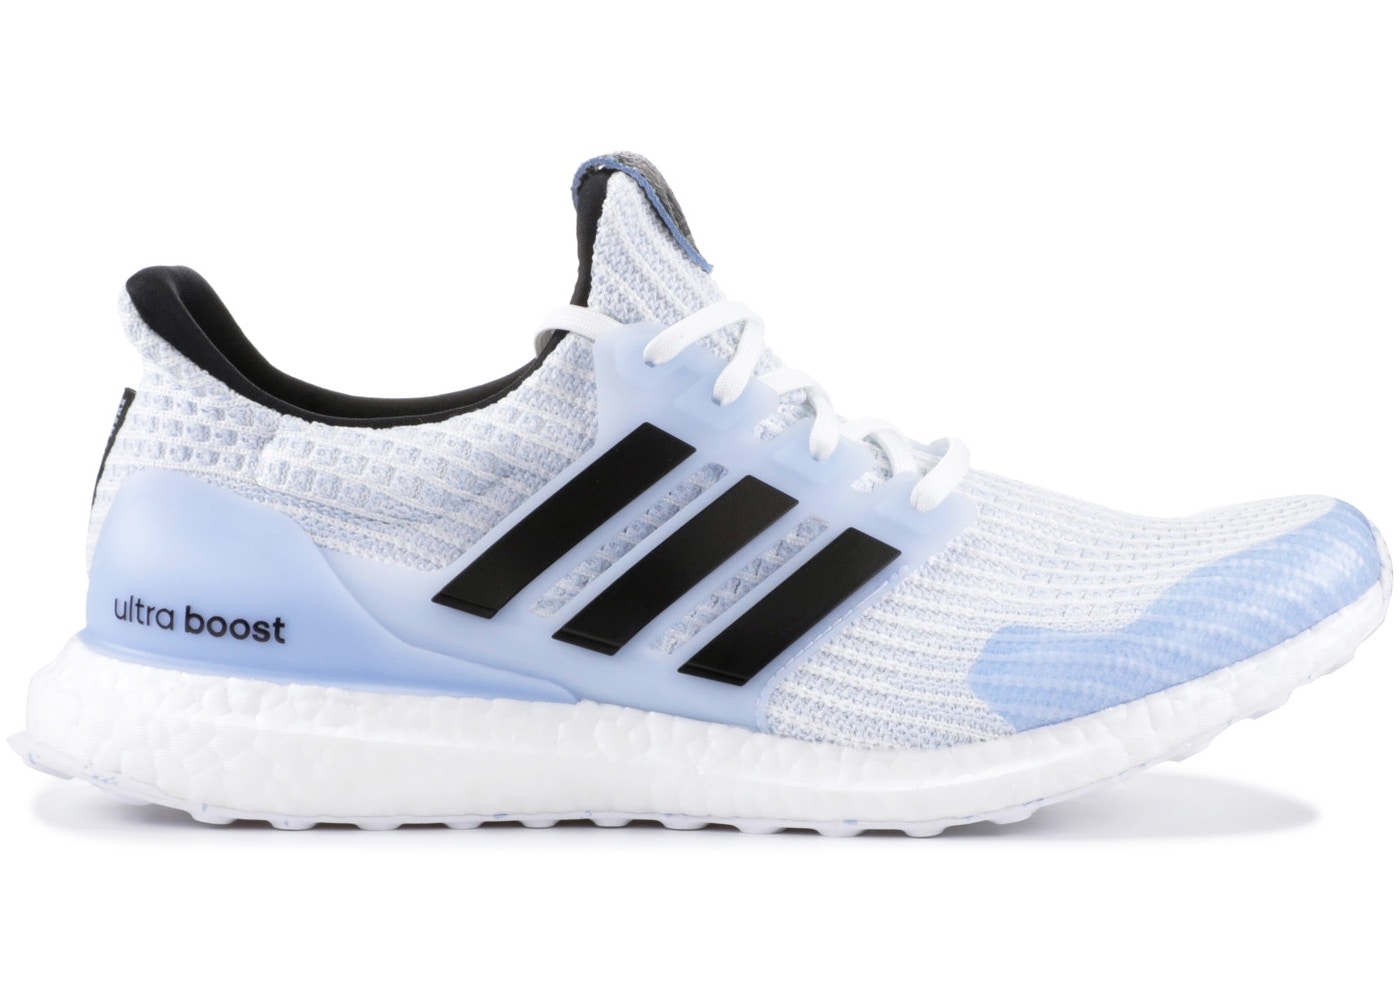 cf325684 adidas Ultra Boost 4.0 Game of Thrones White Walkers - EE3708